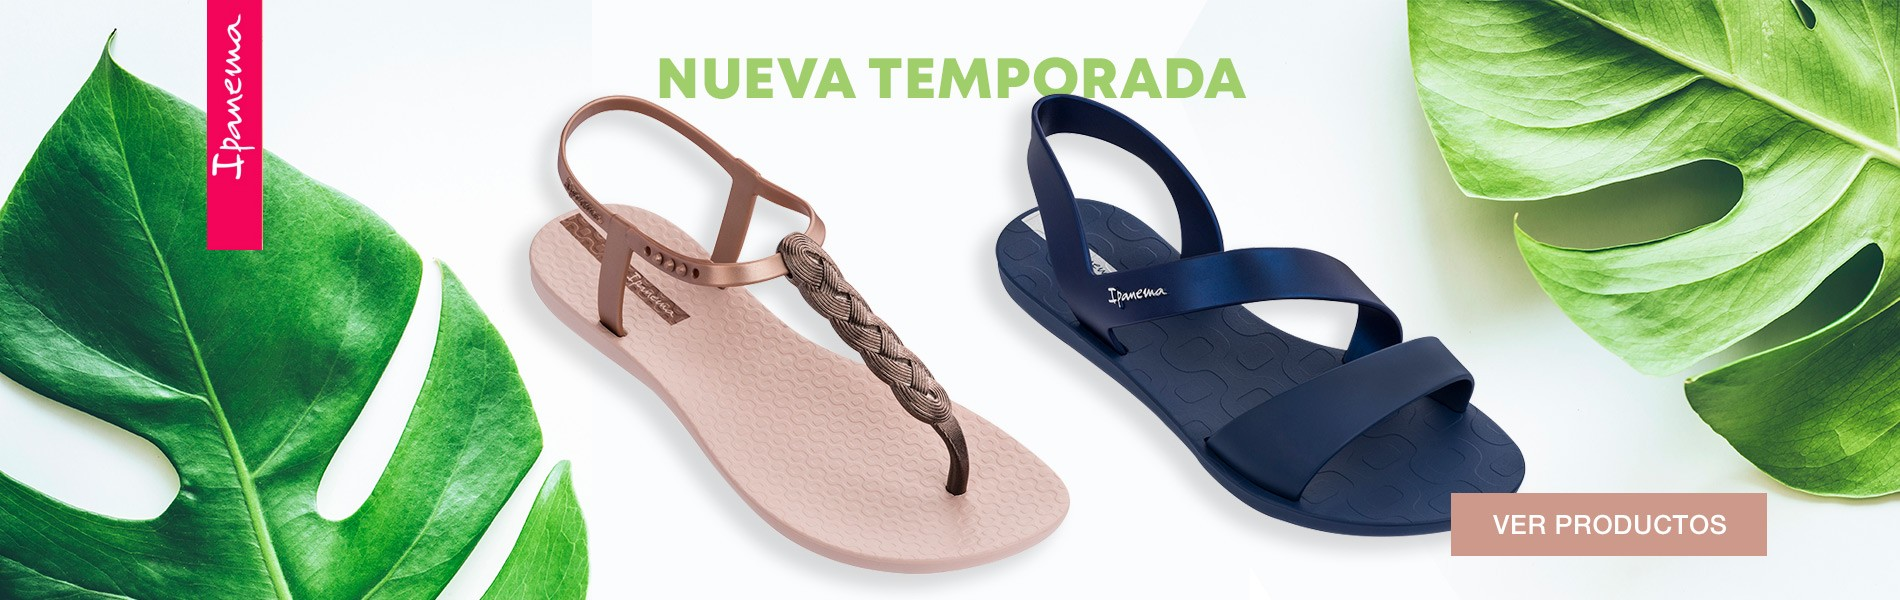 Temporada 2019 Chanclas Ipanema